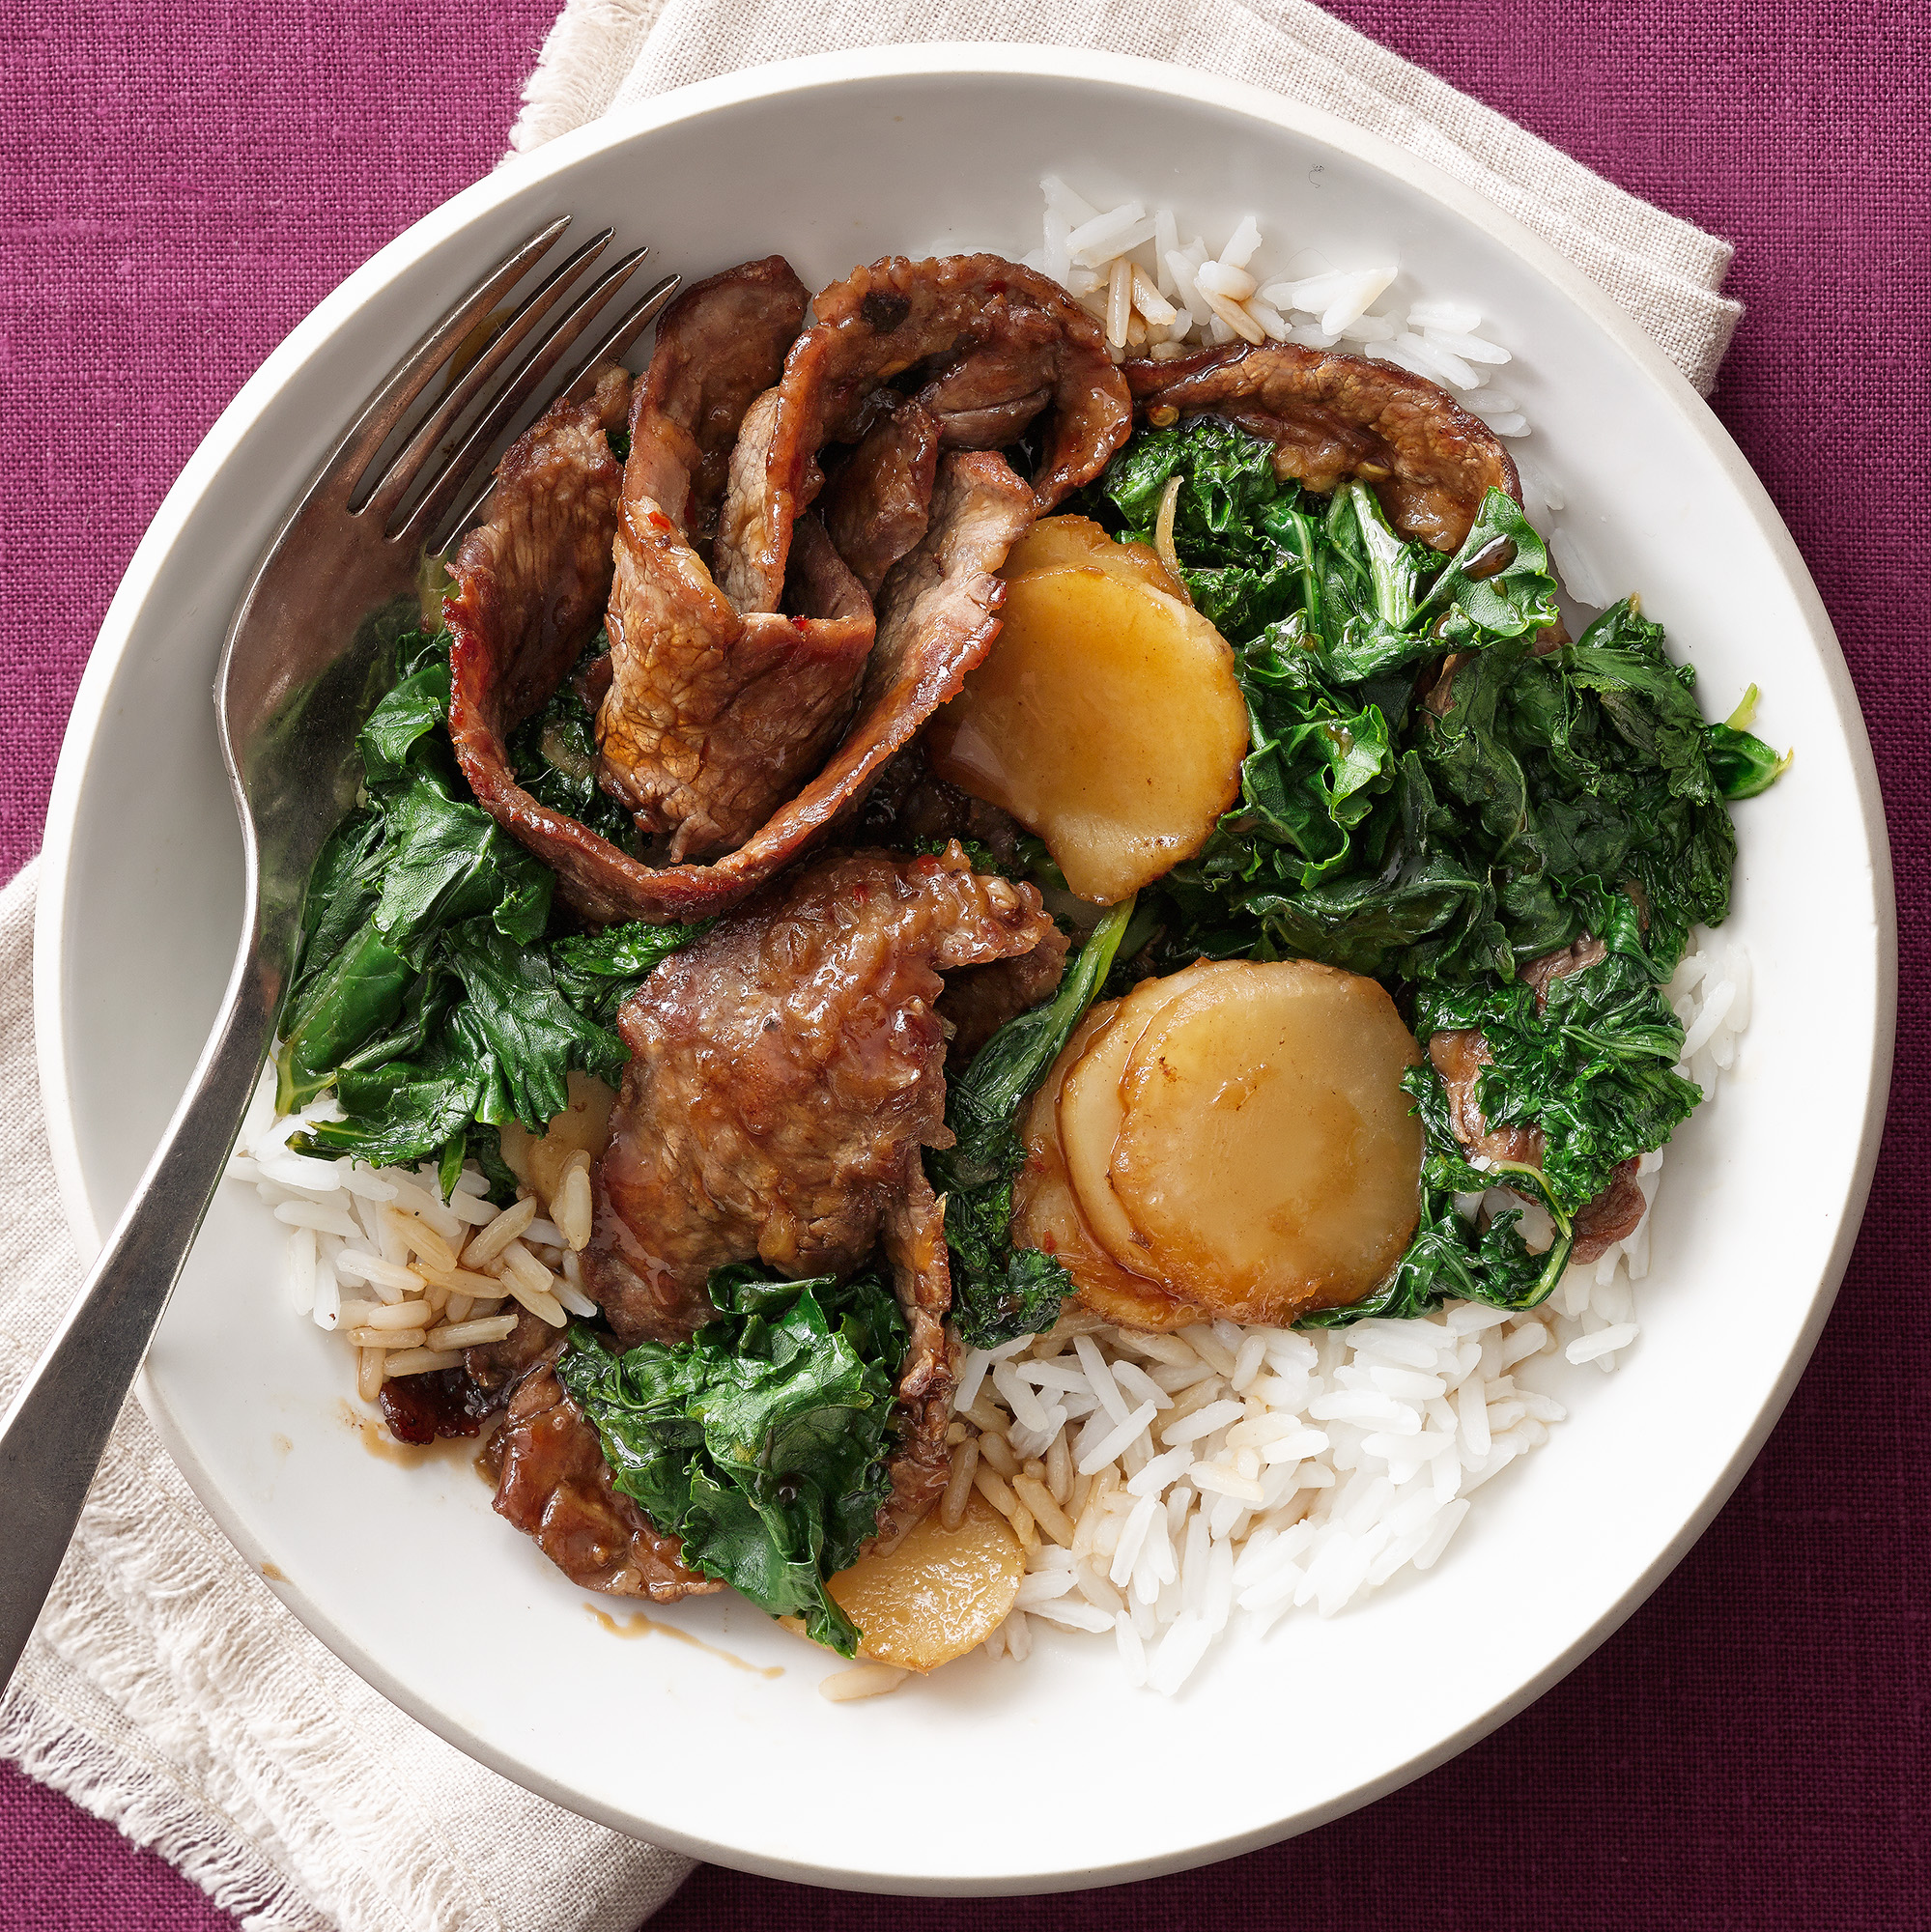 Beef and Kale Stir-Fry